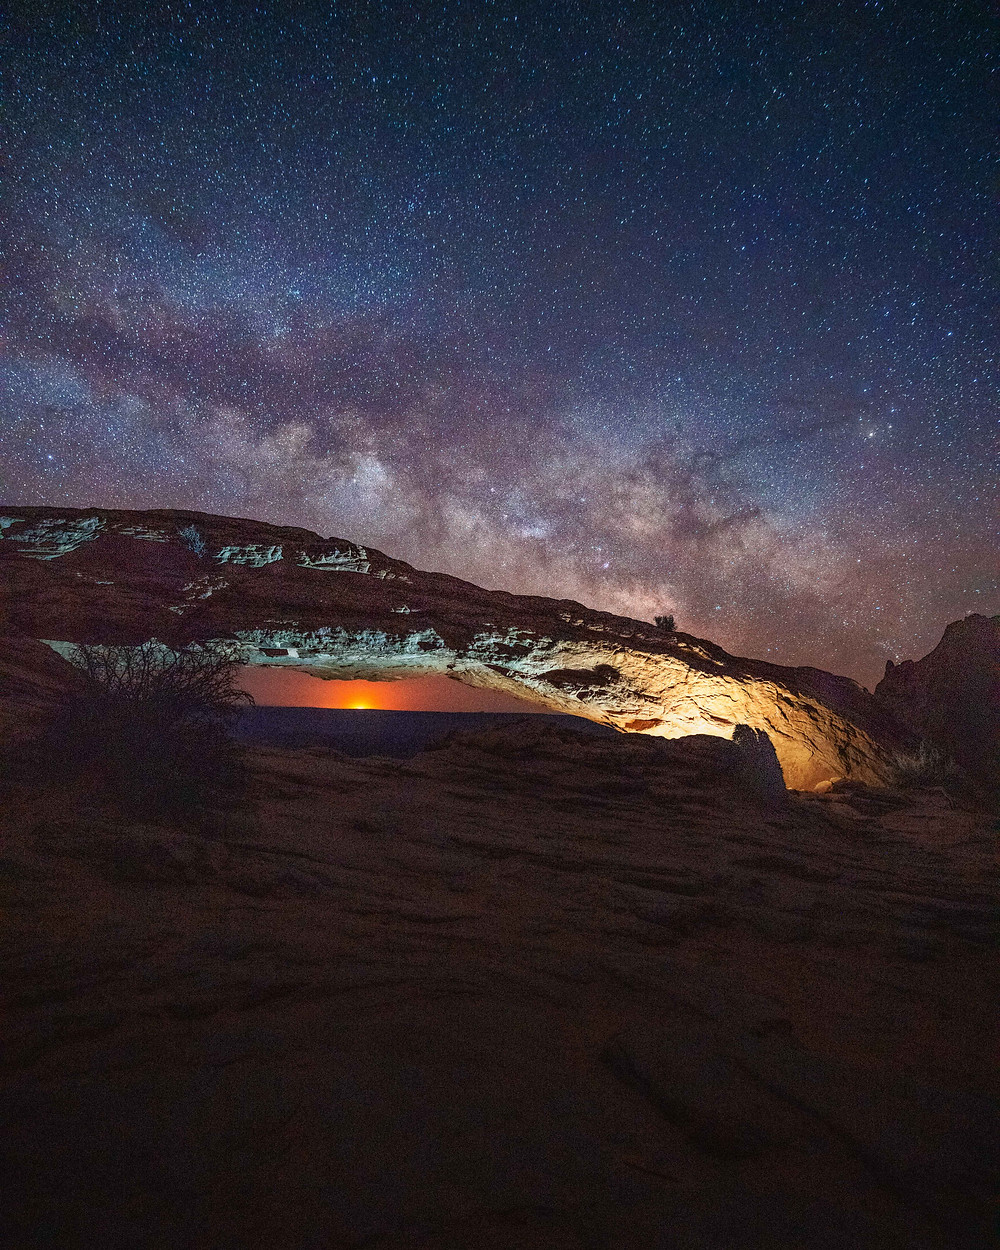 Milkyway and night stars over the Mesa Arch in Moab